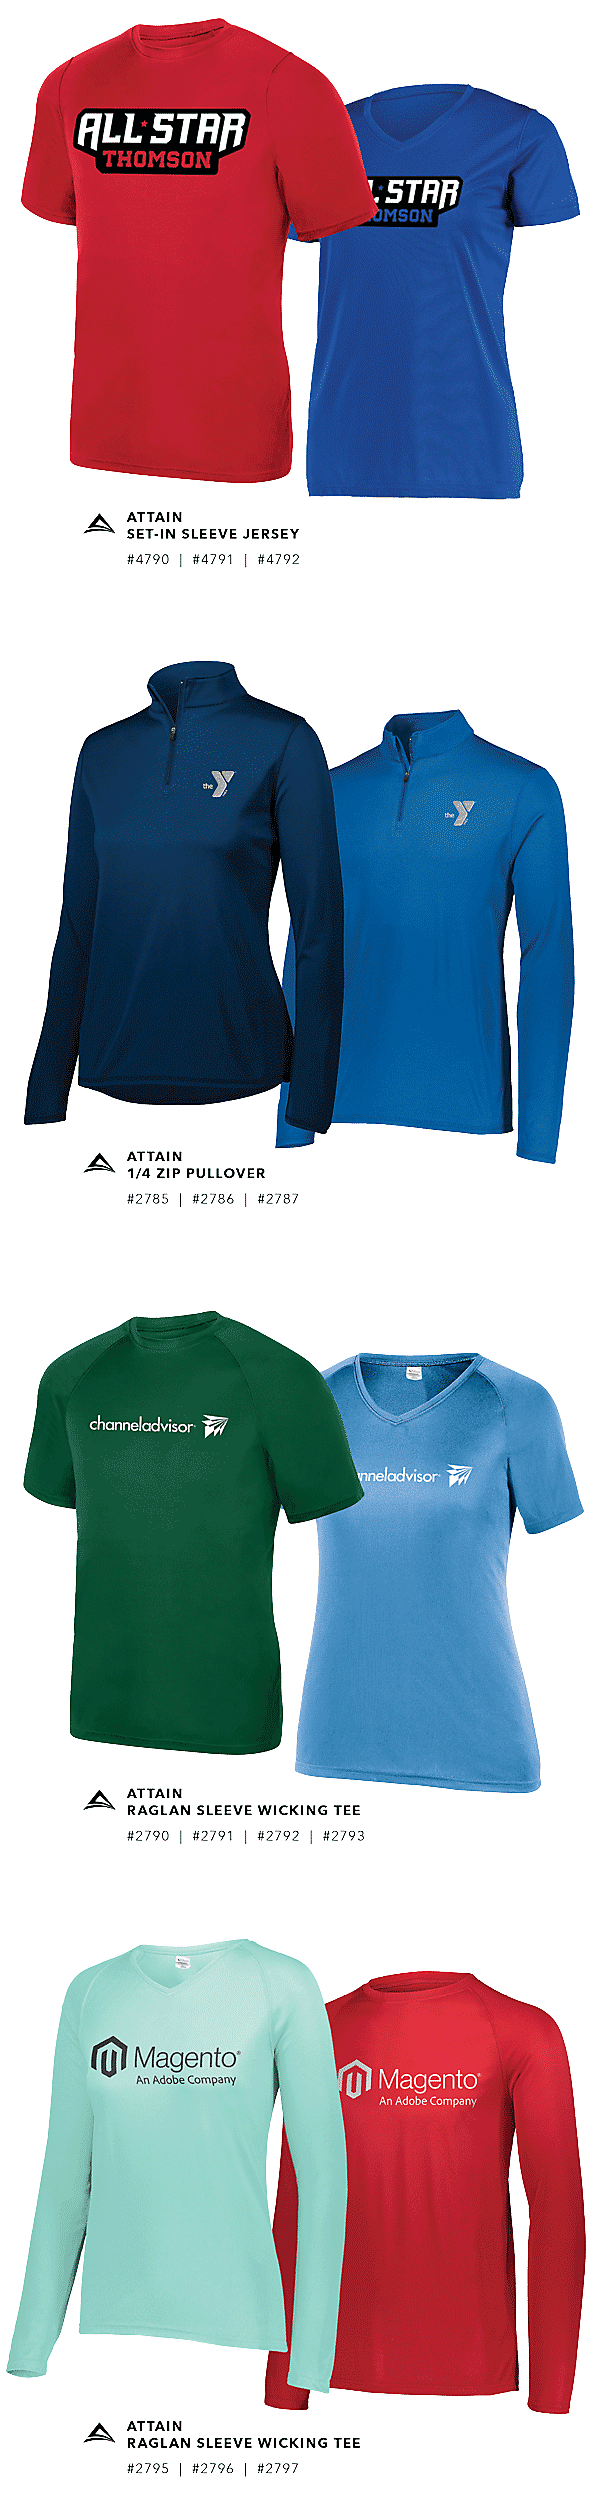 e33231bf574b Wholesale Sports Apparel & Bulk Team Clothing | Augusta Sportswear ...